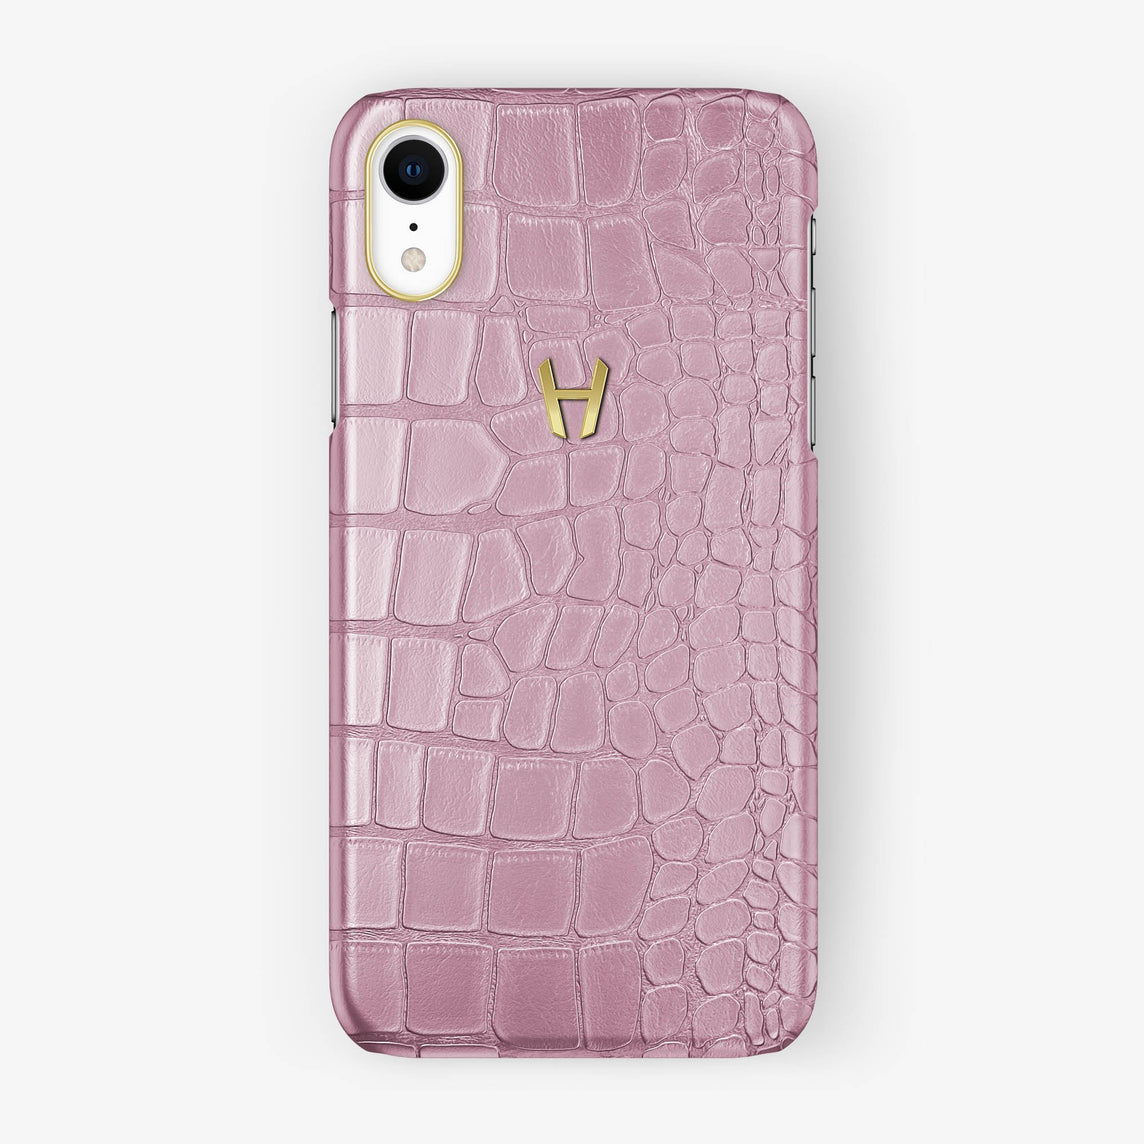 Alligator [iPhone Case] [model:iphone-xr-case] [colour:pink] [finishing:yellow-gold]